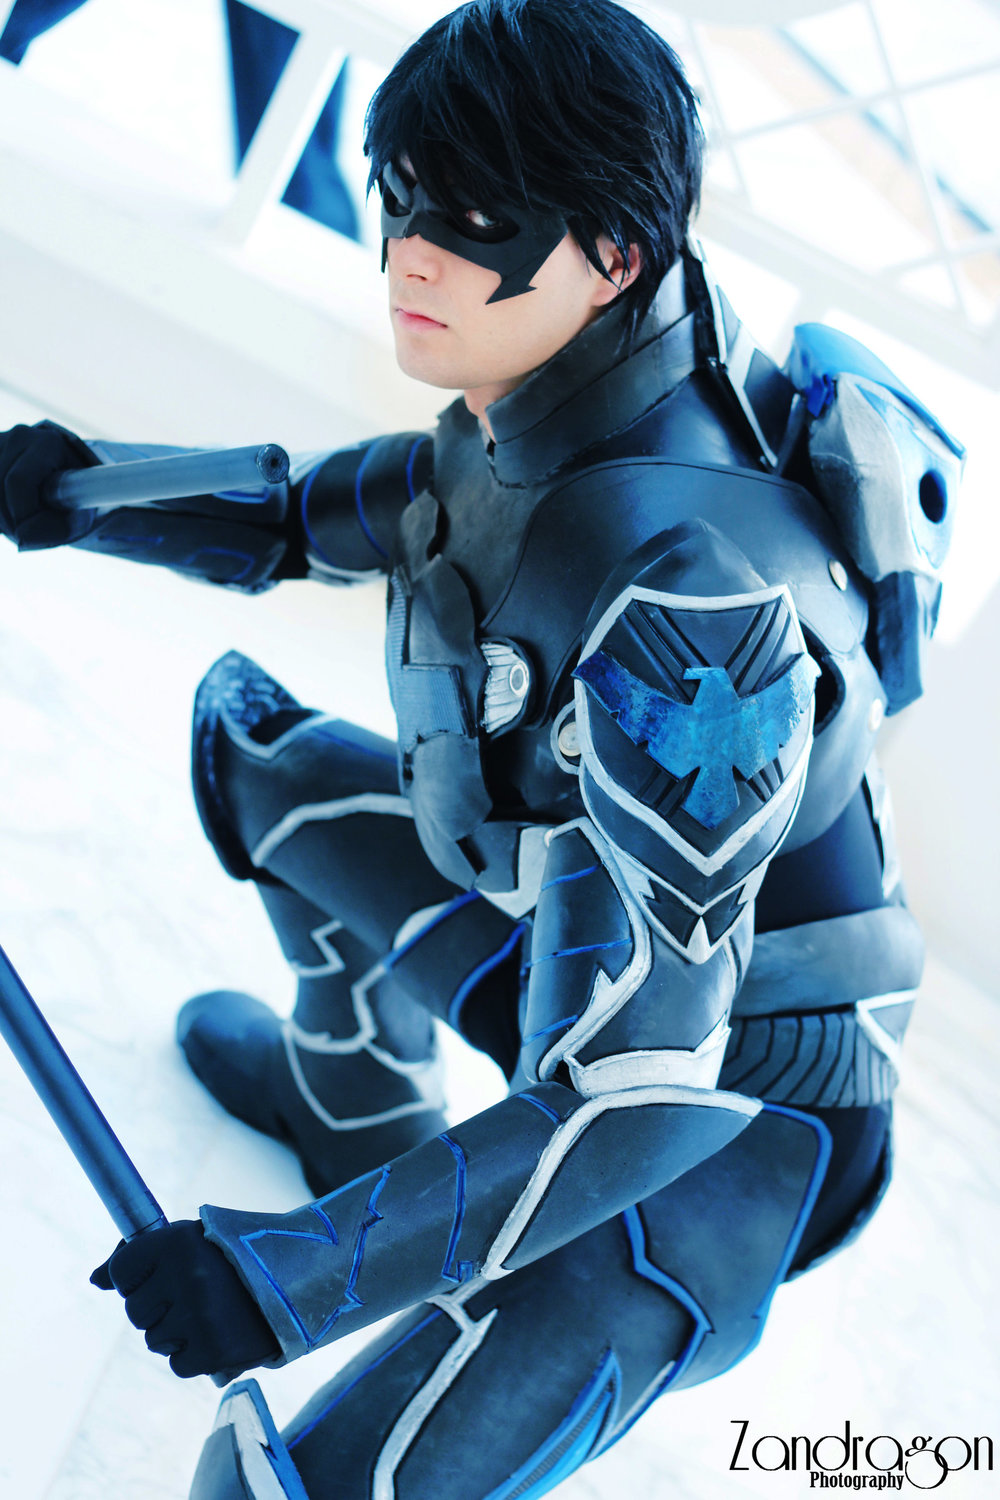 Cloudbreak Cosplay  is Nightwing | Photo by  Zandragon Photography